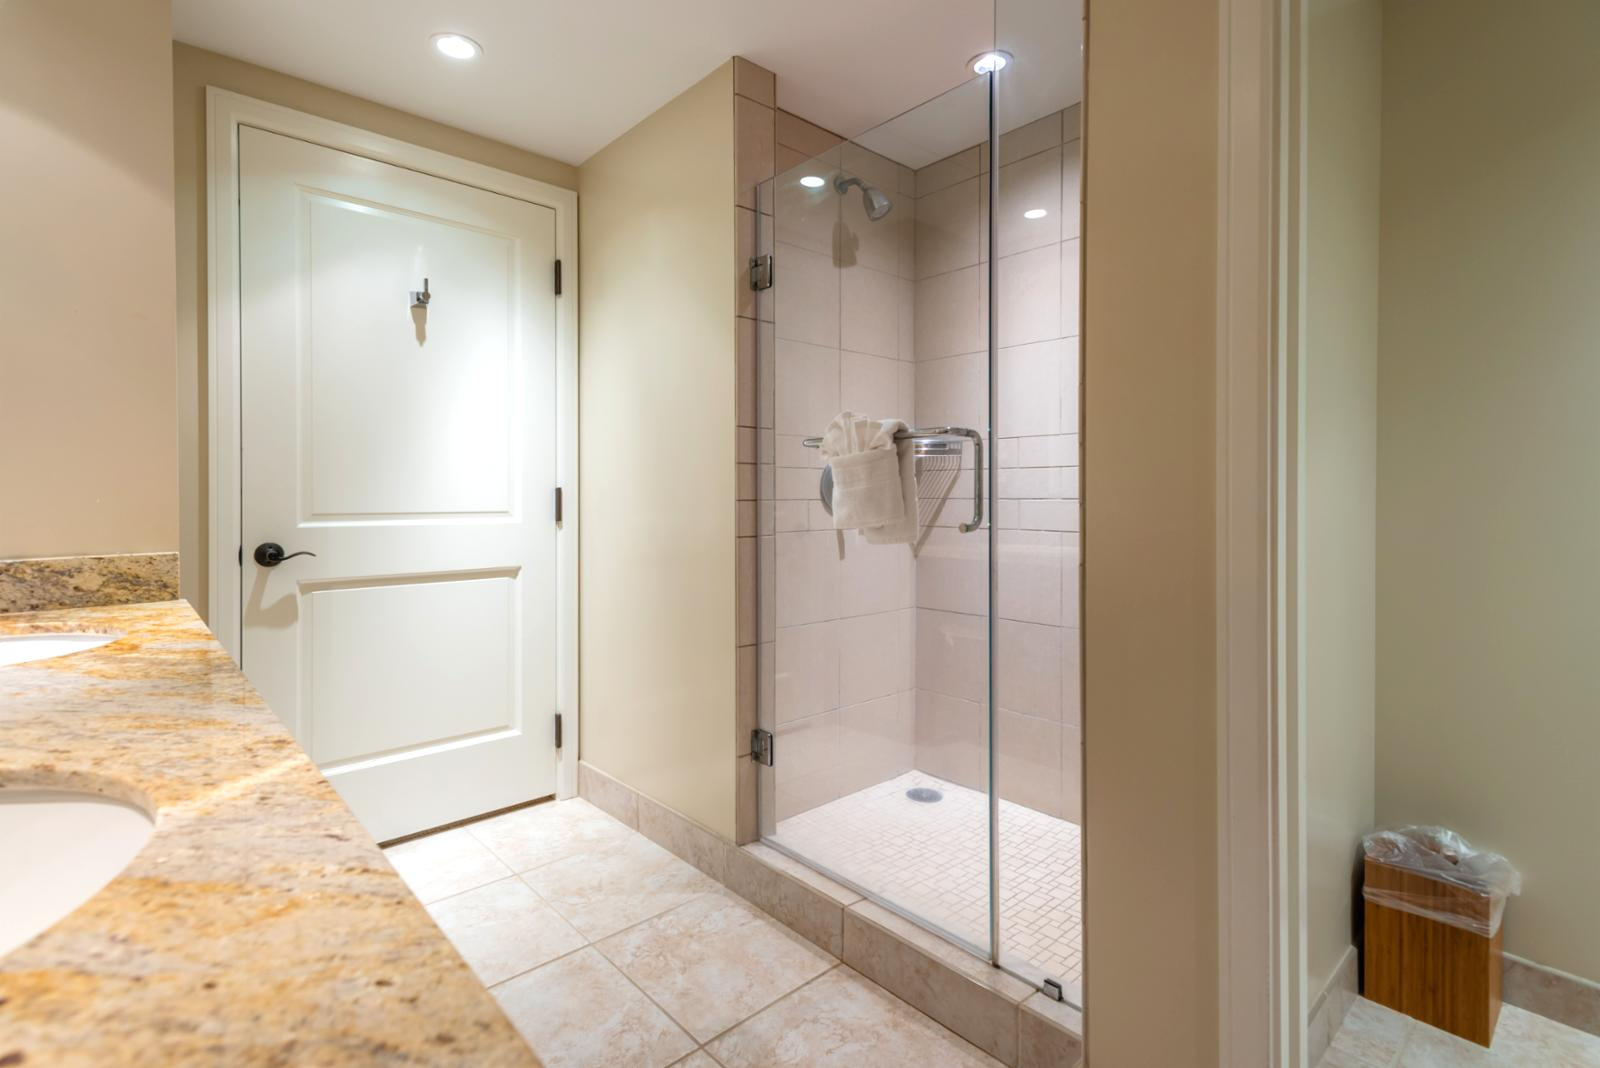 Floor to ceiling glass shower